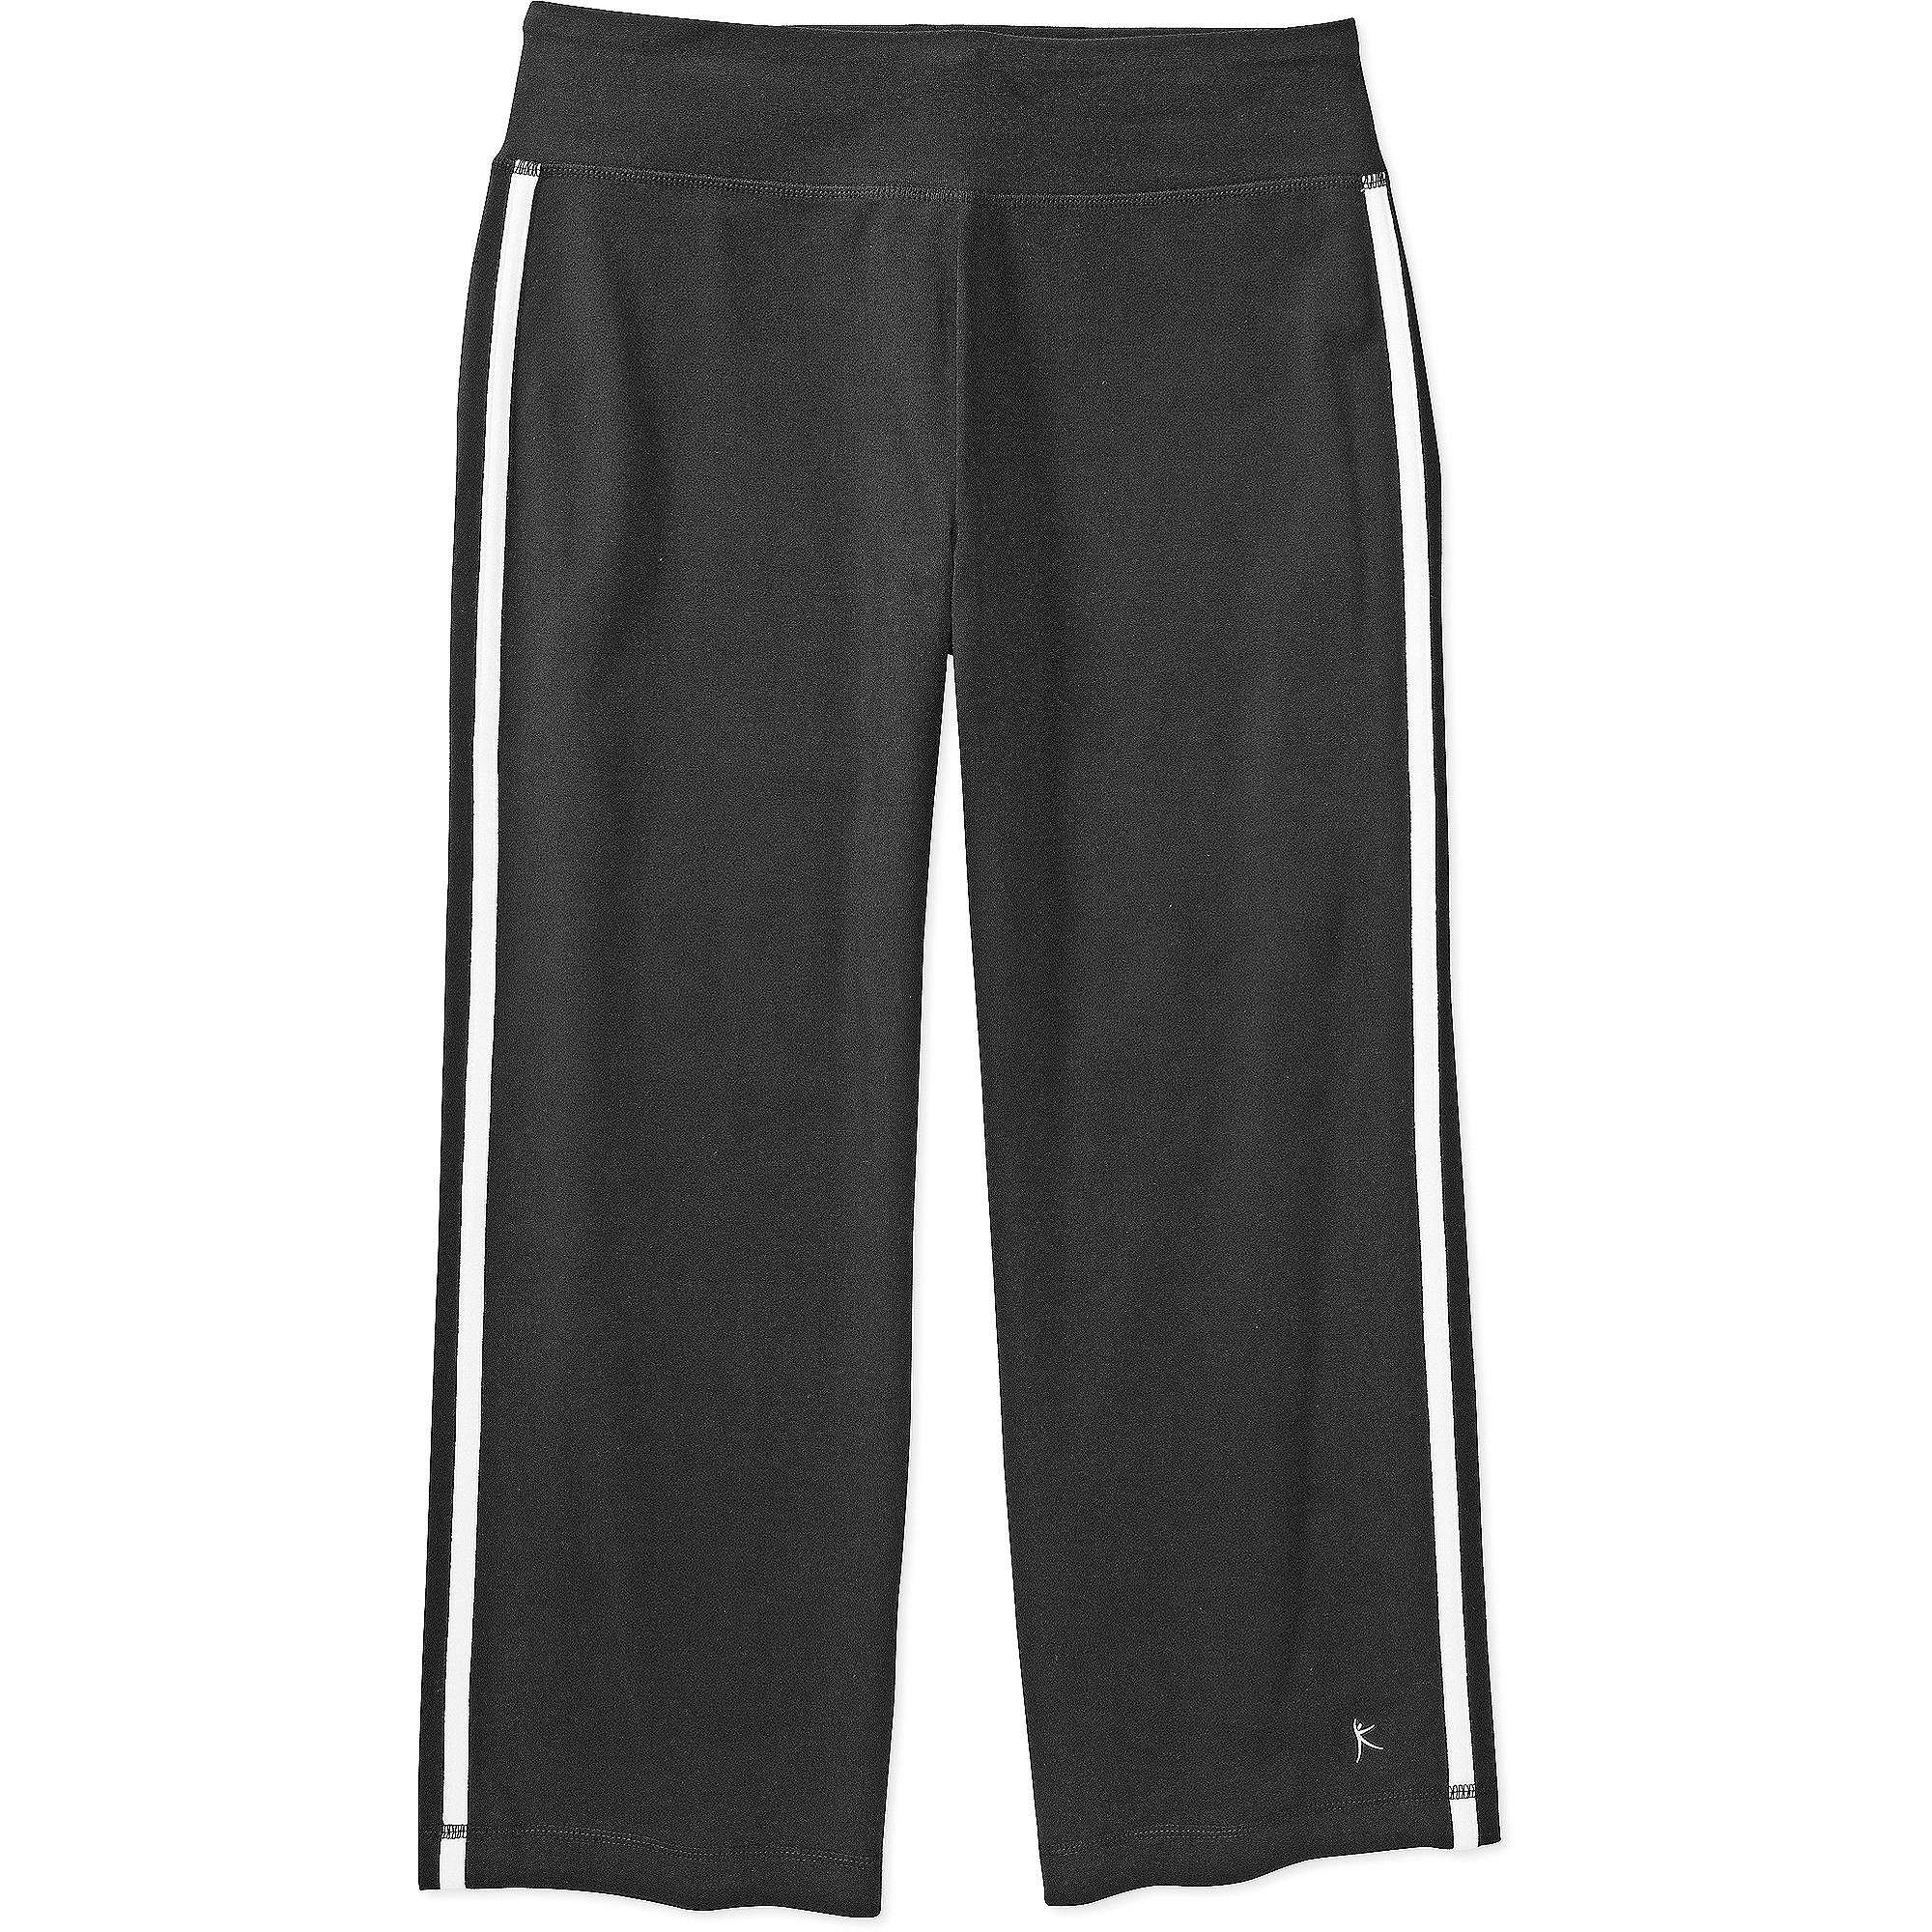 Danskin Now Women's Plus-Size Patch Pocket Pants - Walmart.com